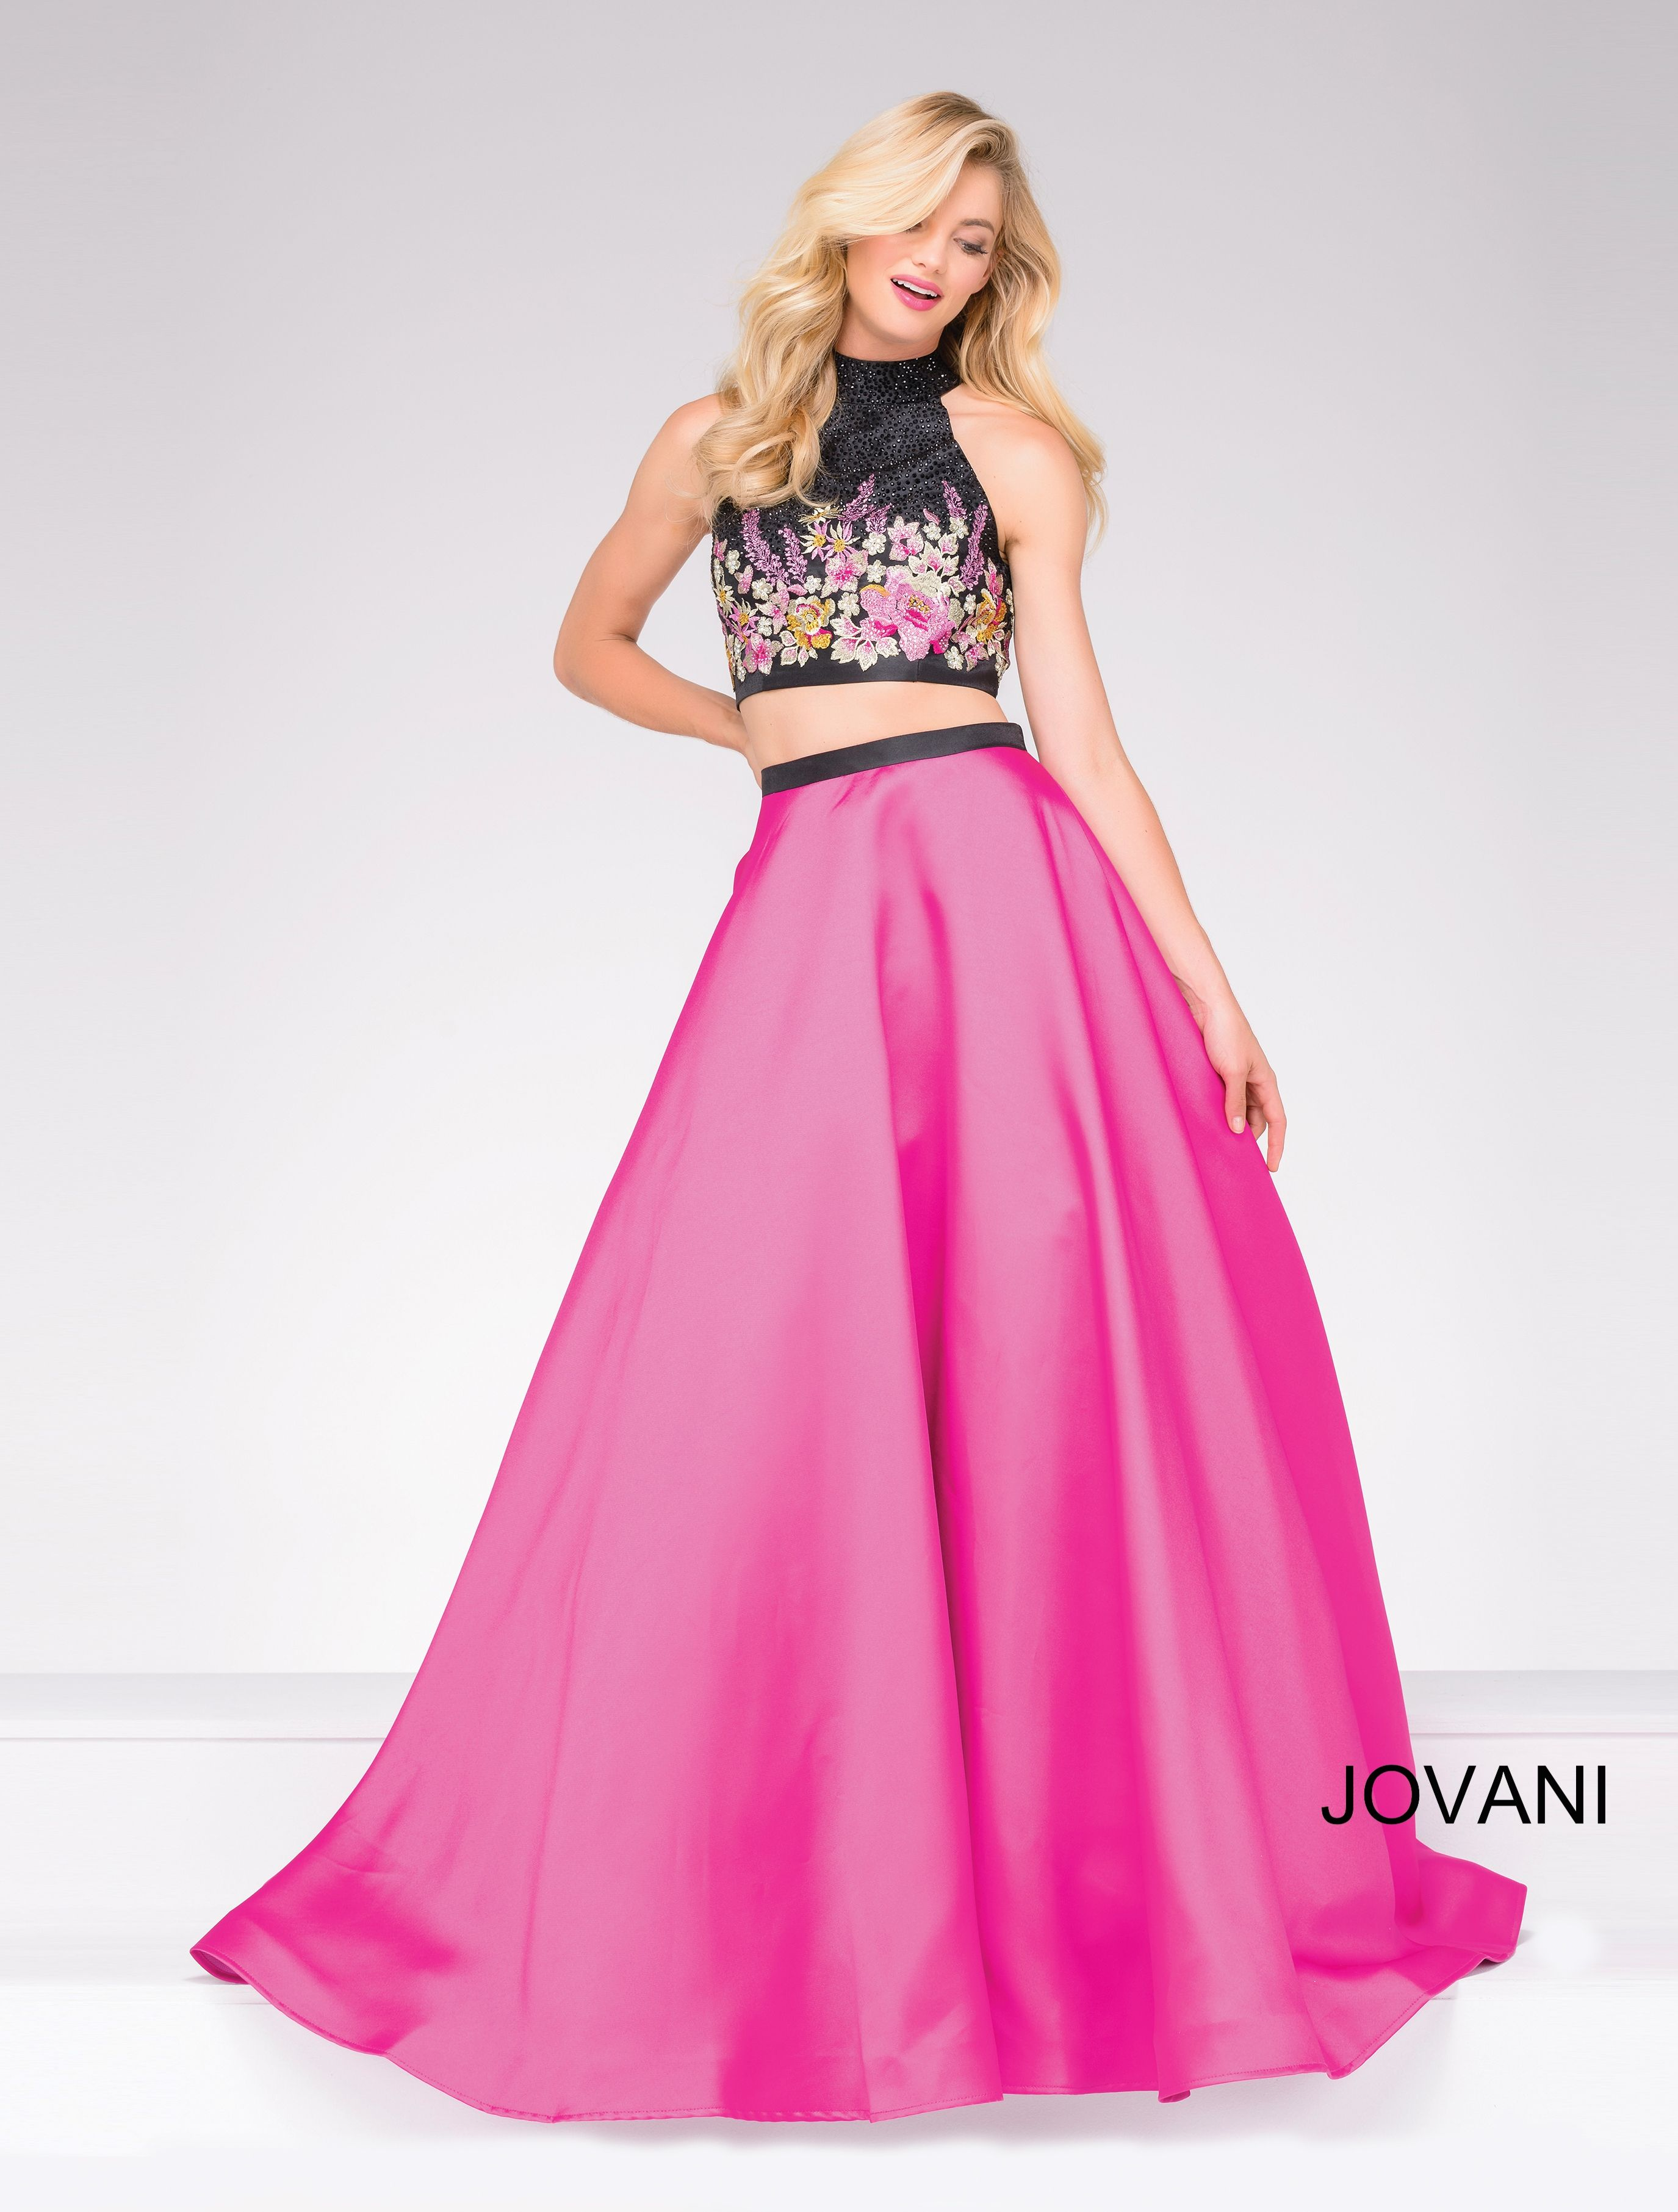 f0367f02585b Jovani two piece prom dress with floral pattern top and pink full .